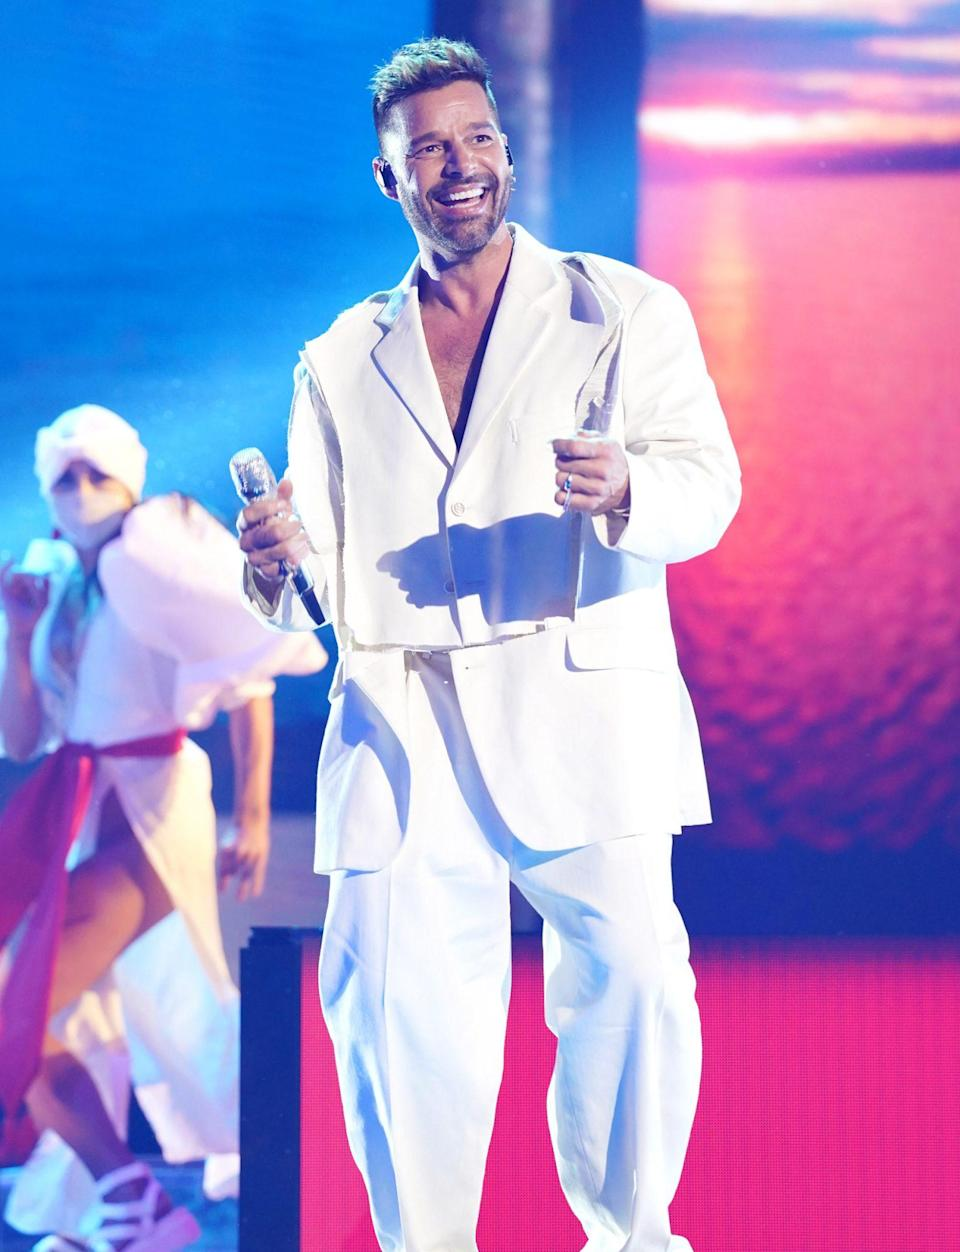 <p>Ricky Martin smiles big while performing at the Latin American Music Awards on Thursday in Sunrise, Florida. </p>